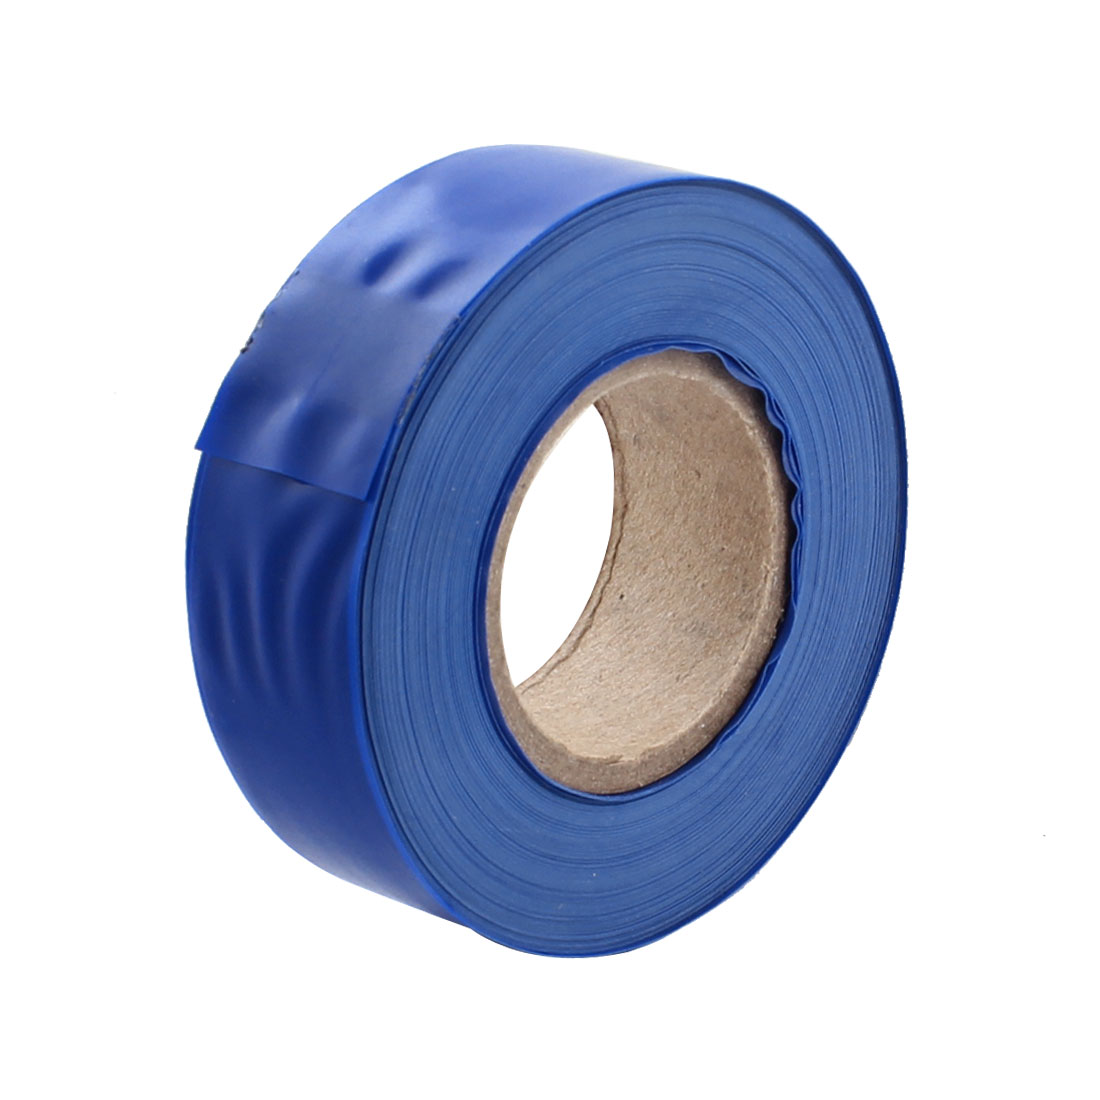 Cable Wire Repair Blue PVC Self-adhesive Electrical Insulation Tape Band 23mm x 6mm